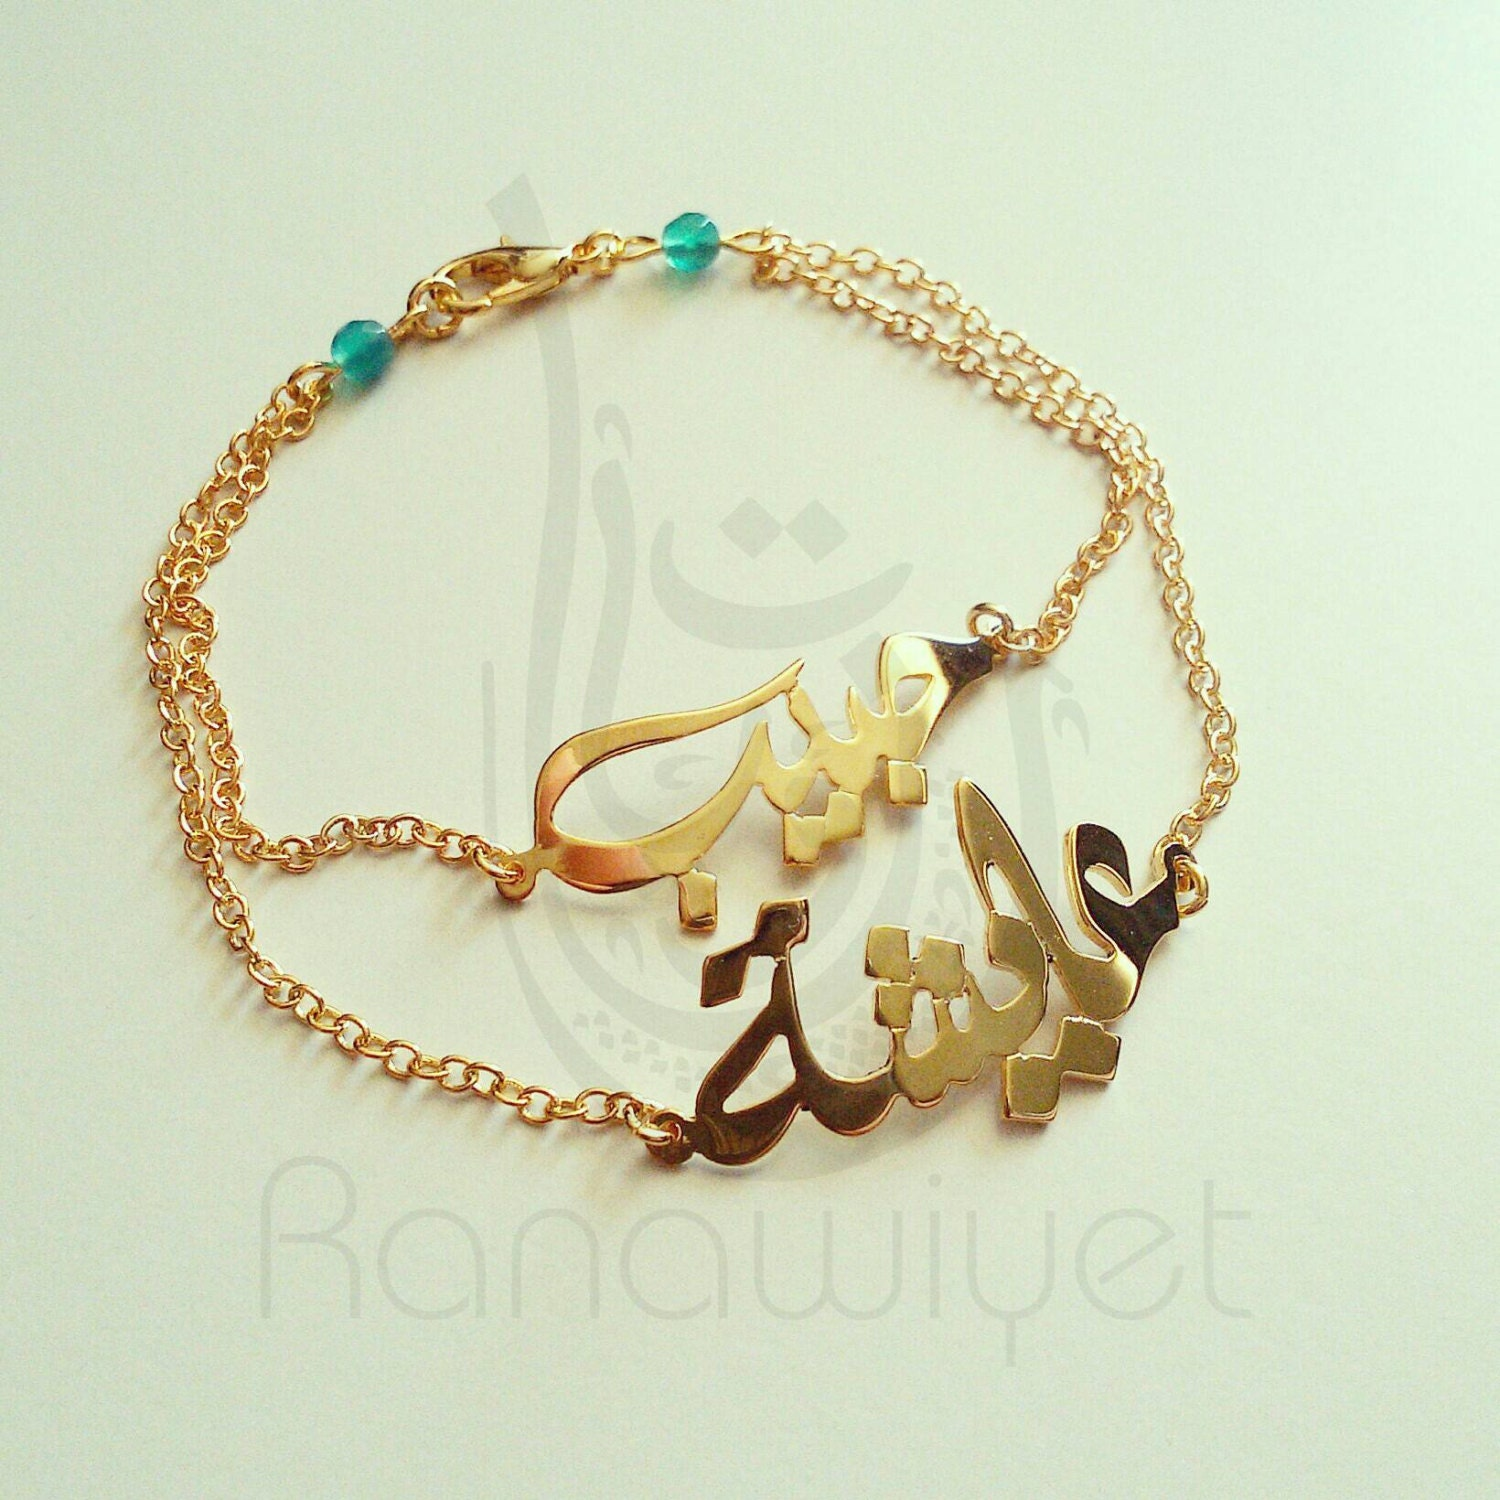 Double Arabic Calligraphy Name Bracelet With Agate Beads